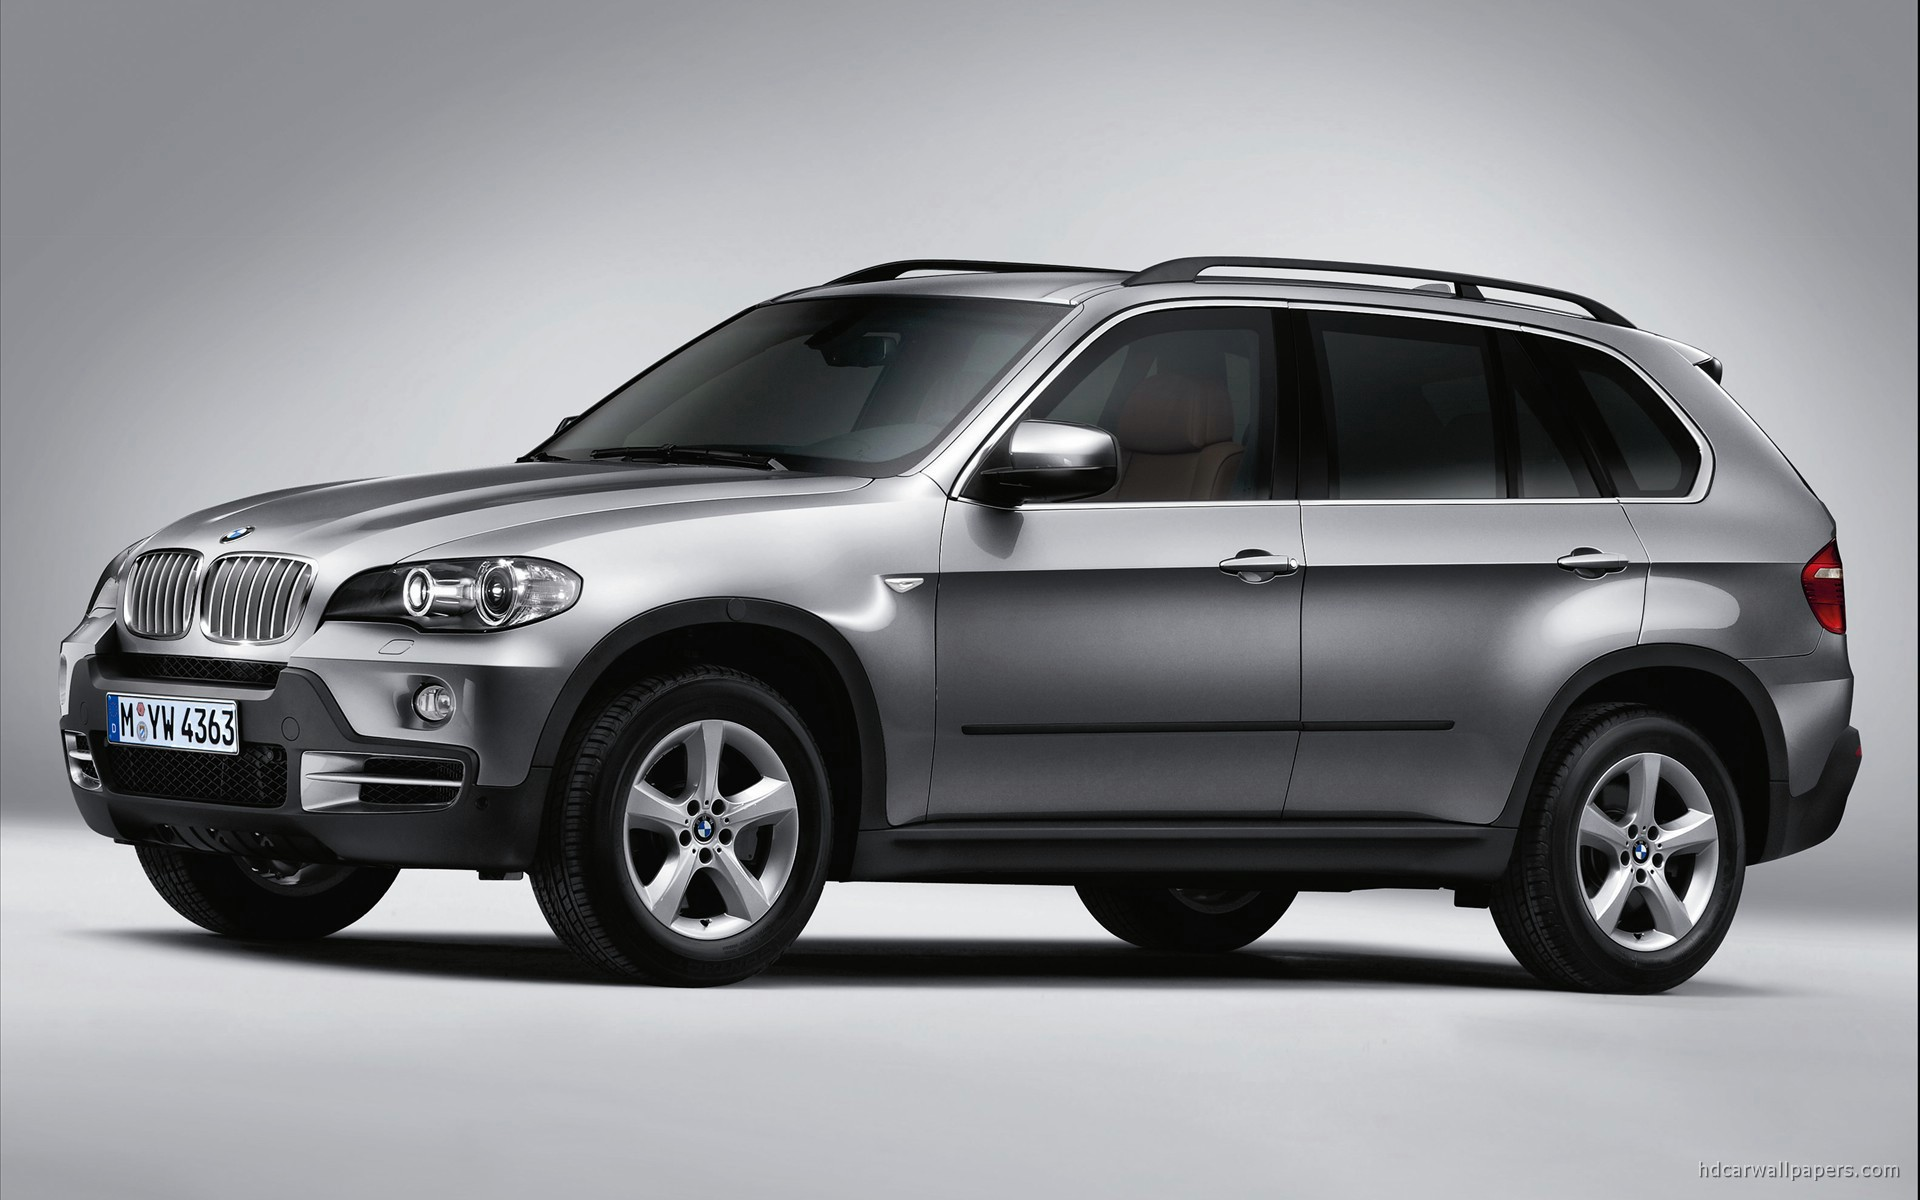 bmw_new_x5_security-wide Exciting Blackberry Z10 Bmw Snap In Cars Trend